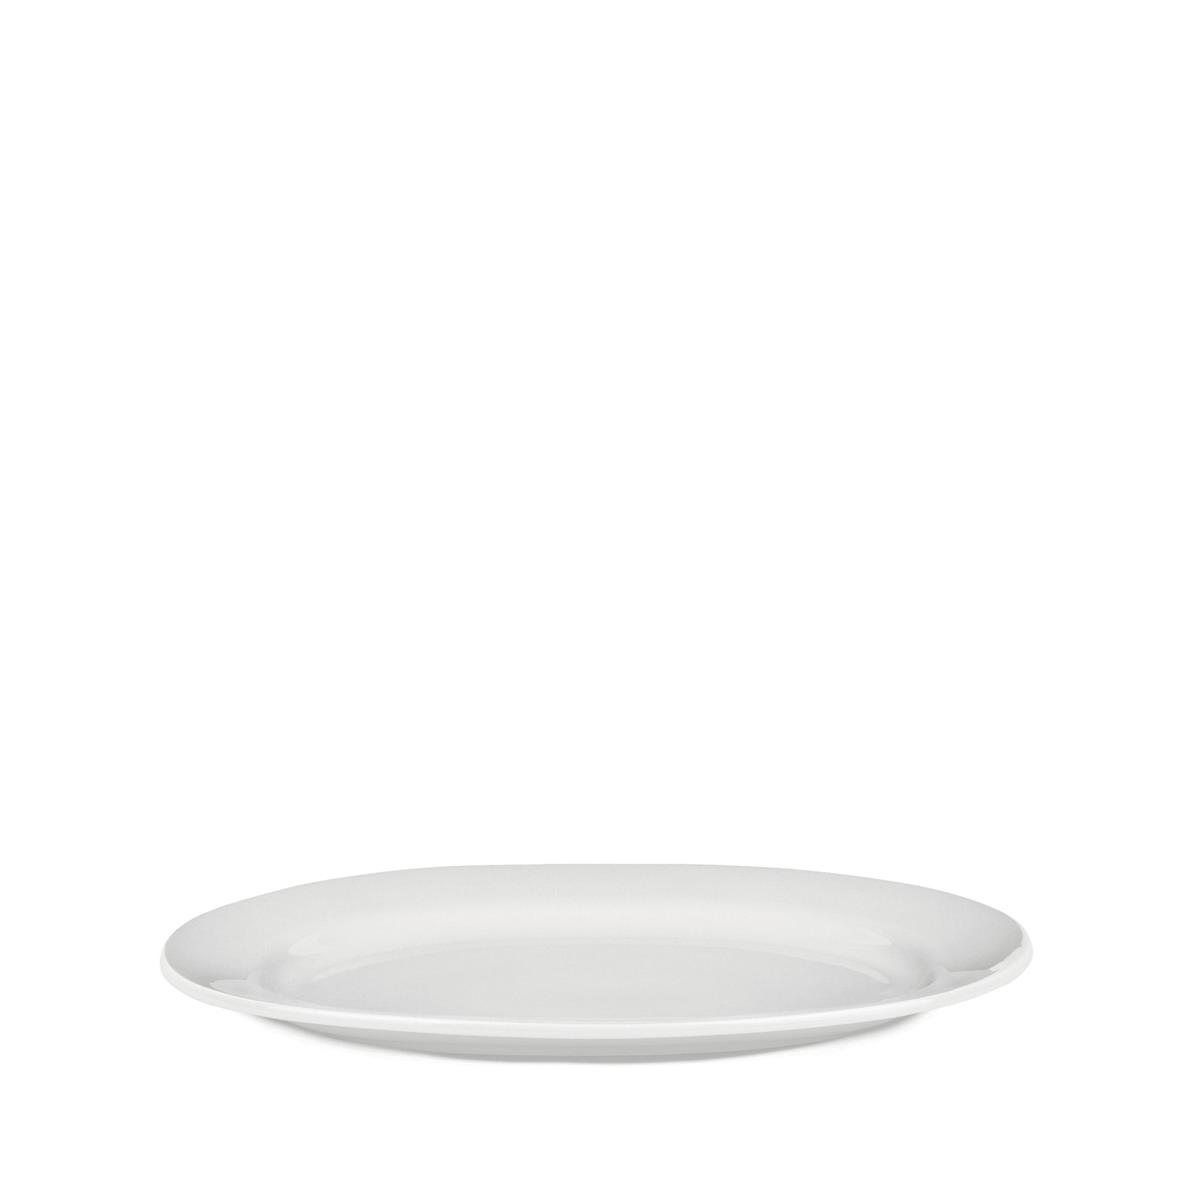 Alessi-PlateBowlCup Oval serving plate in white porcelain